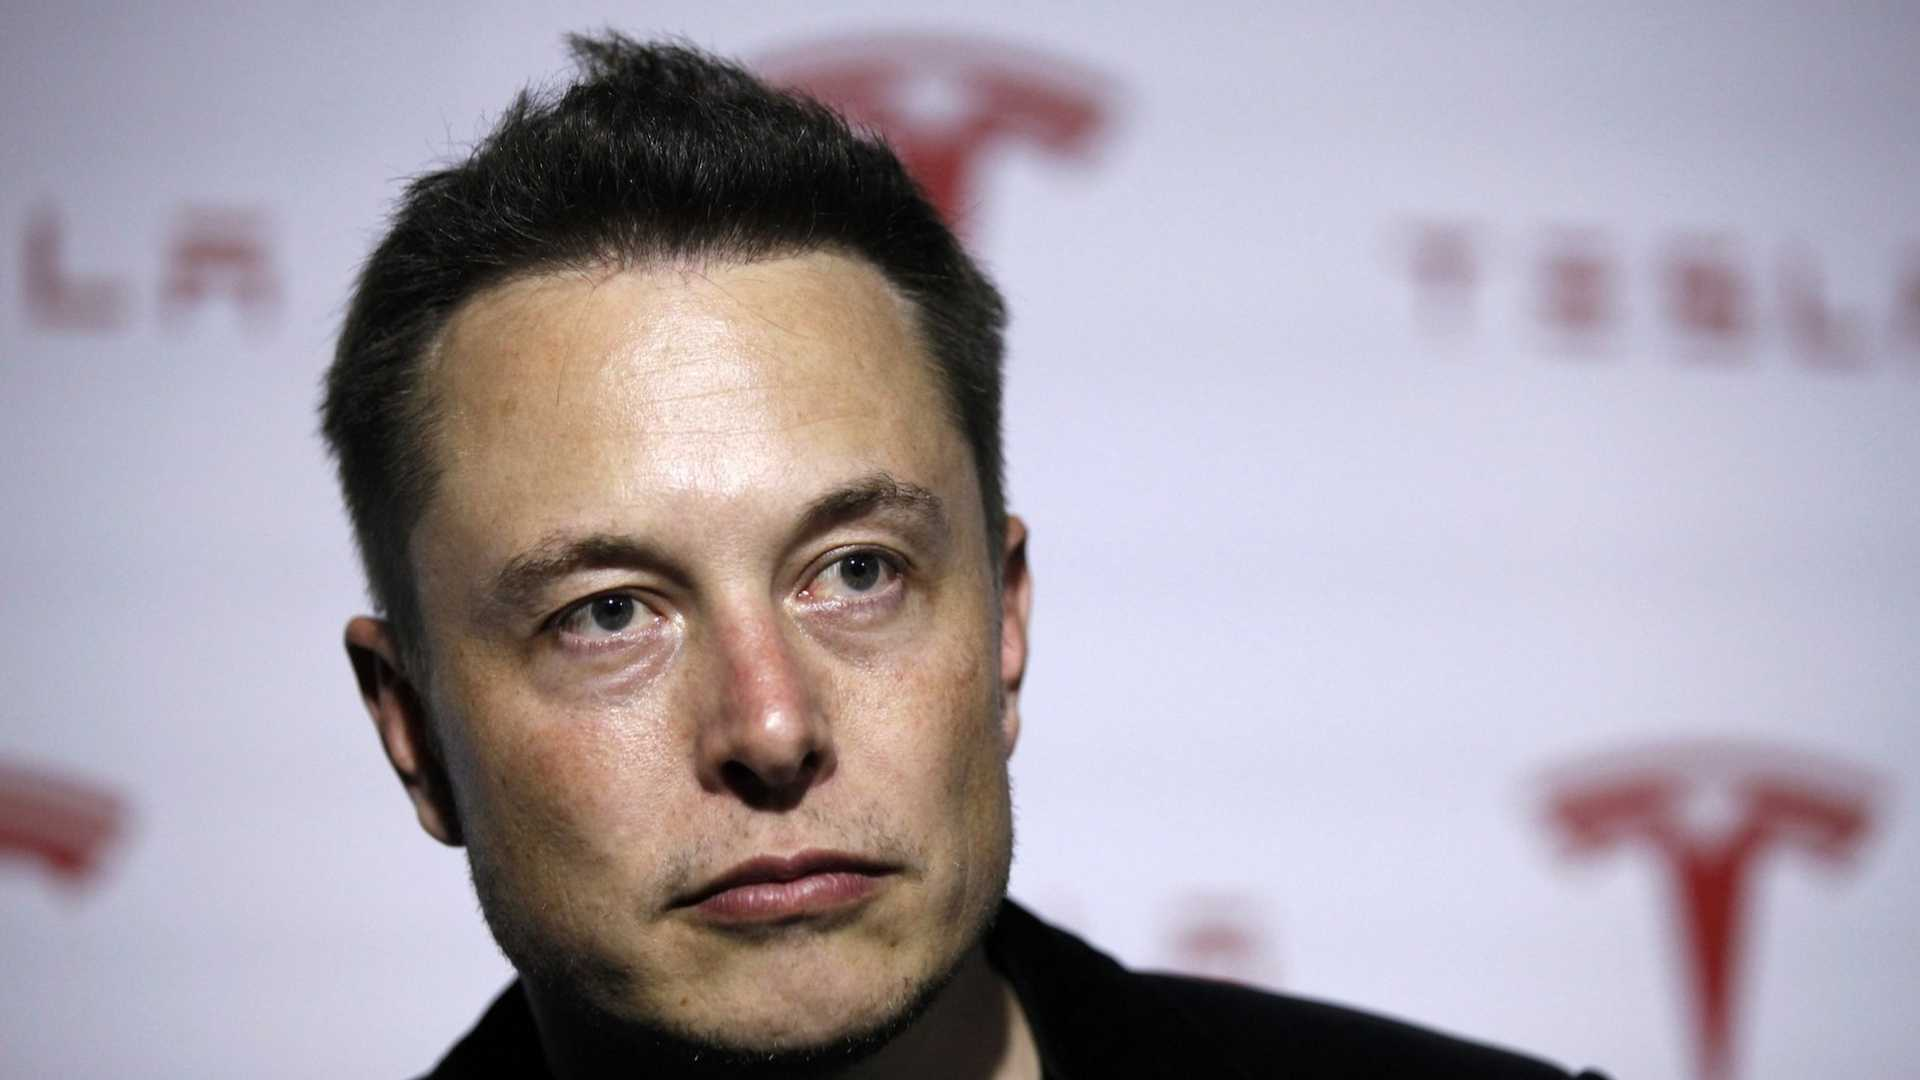 Elon Musk: Tesla will move its HQ and future programmes to Texas/Nevada